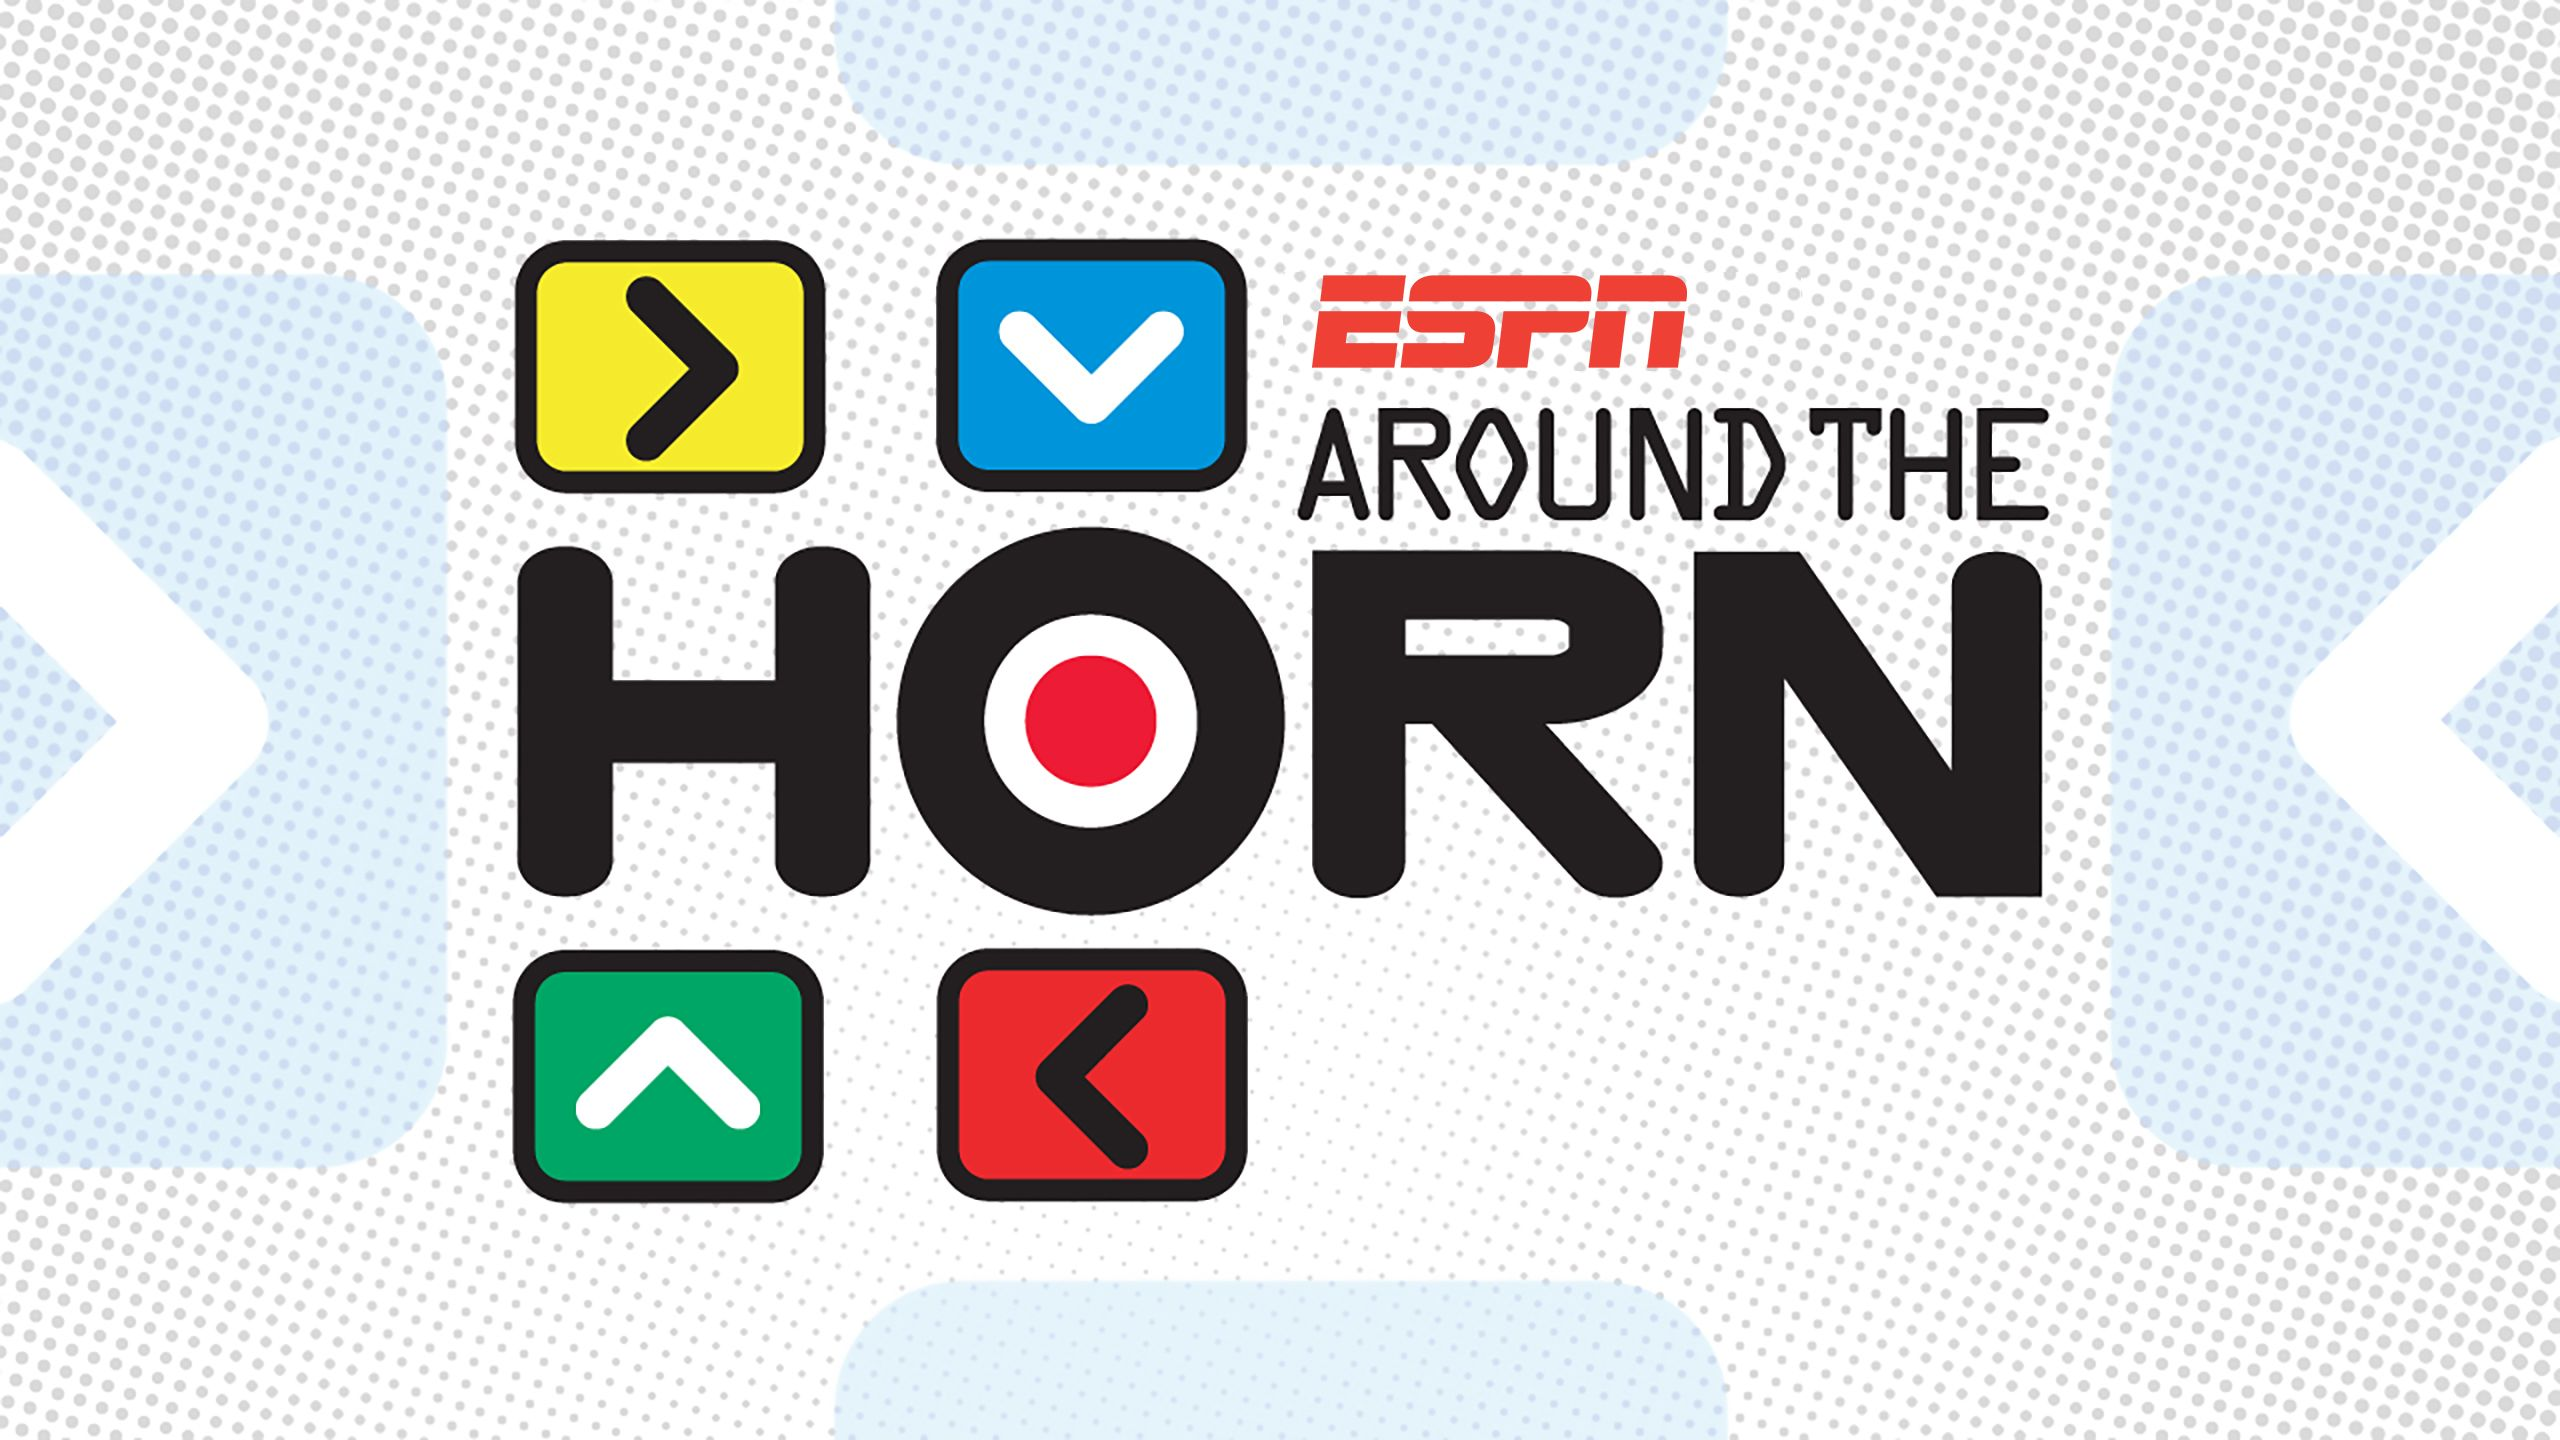 Mon, 7/16 - Around The Horn